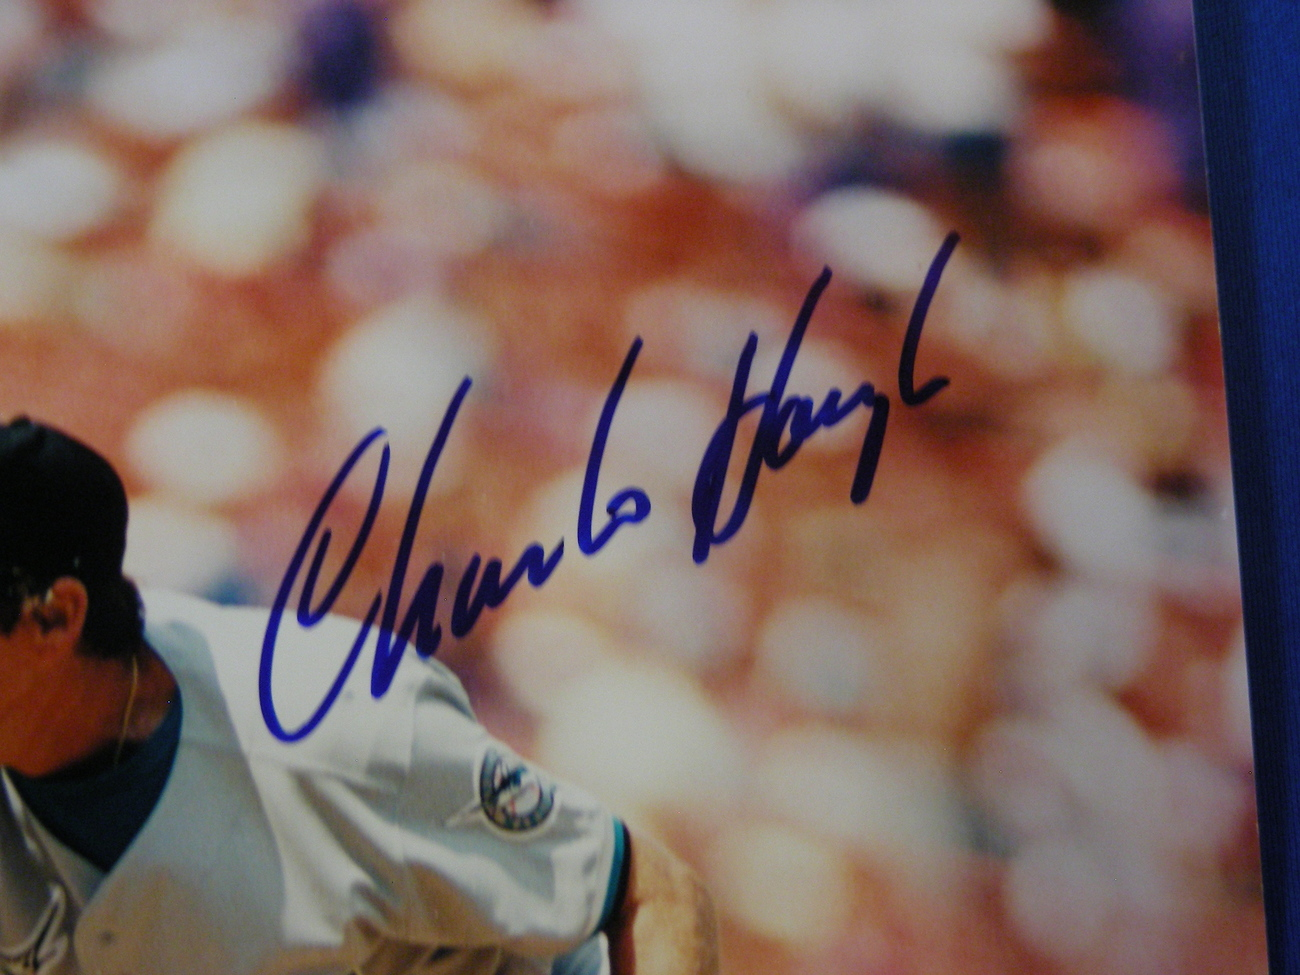 CHARLIE HOUGH DODGERS RANGERS MARLINS PITCHER SIGNED AUTO 8X10 STACKS OF PLAQUES